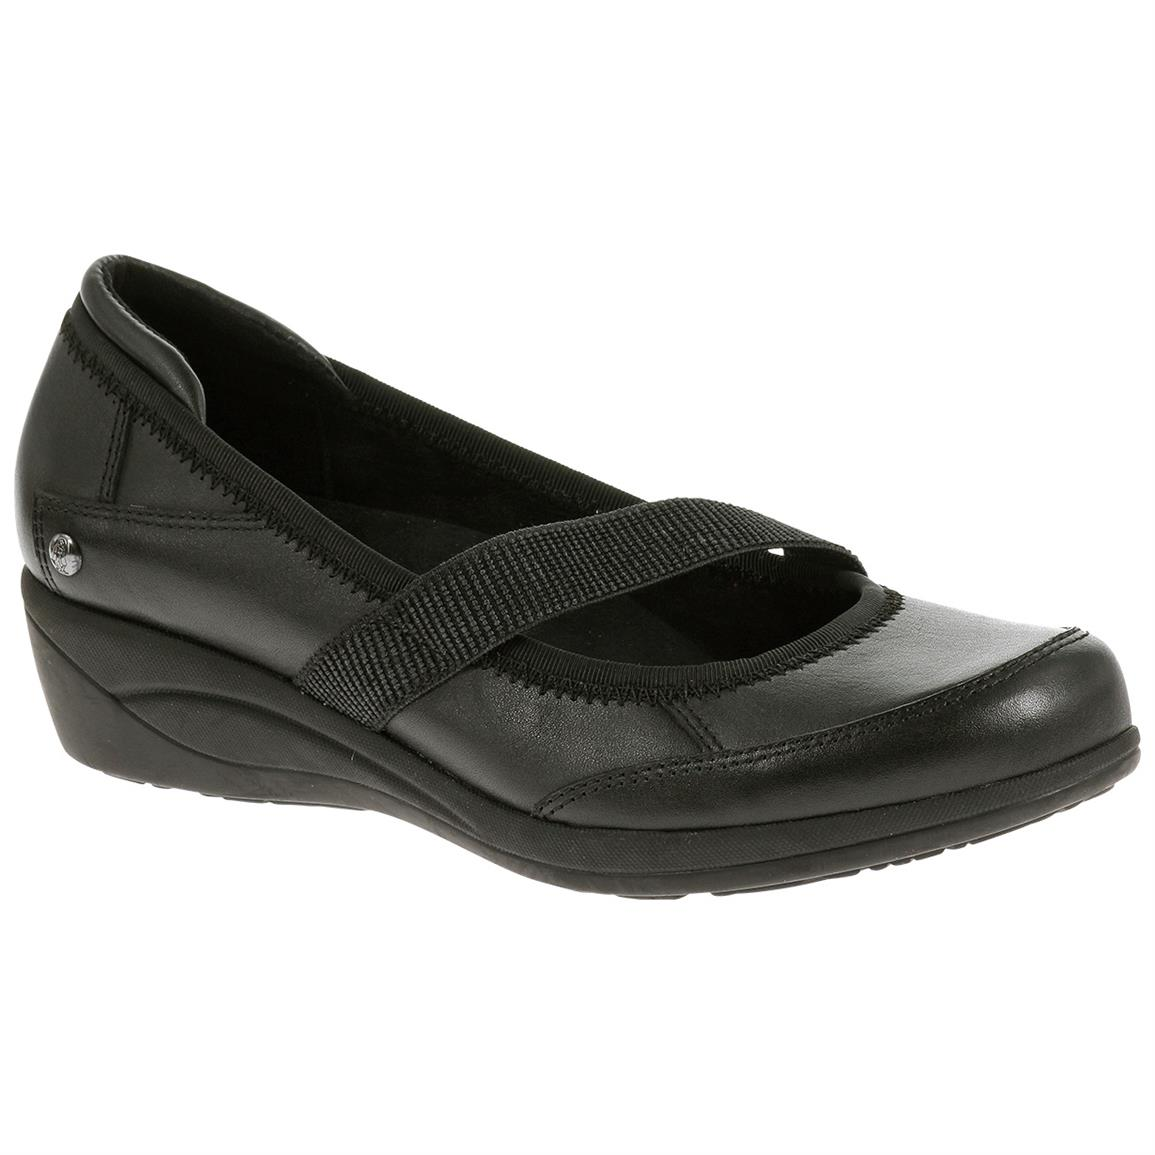 Hush Puppies Women's Velma Oleena Casual Shoes, Black Leather